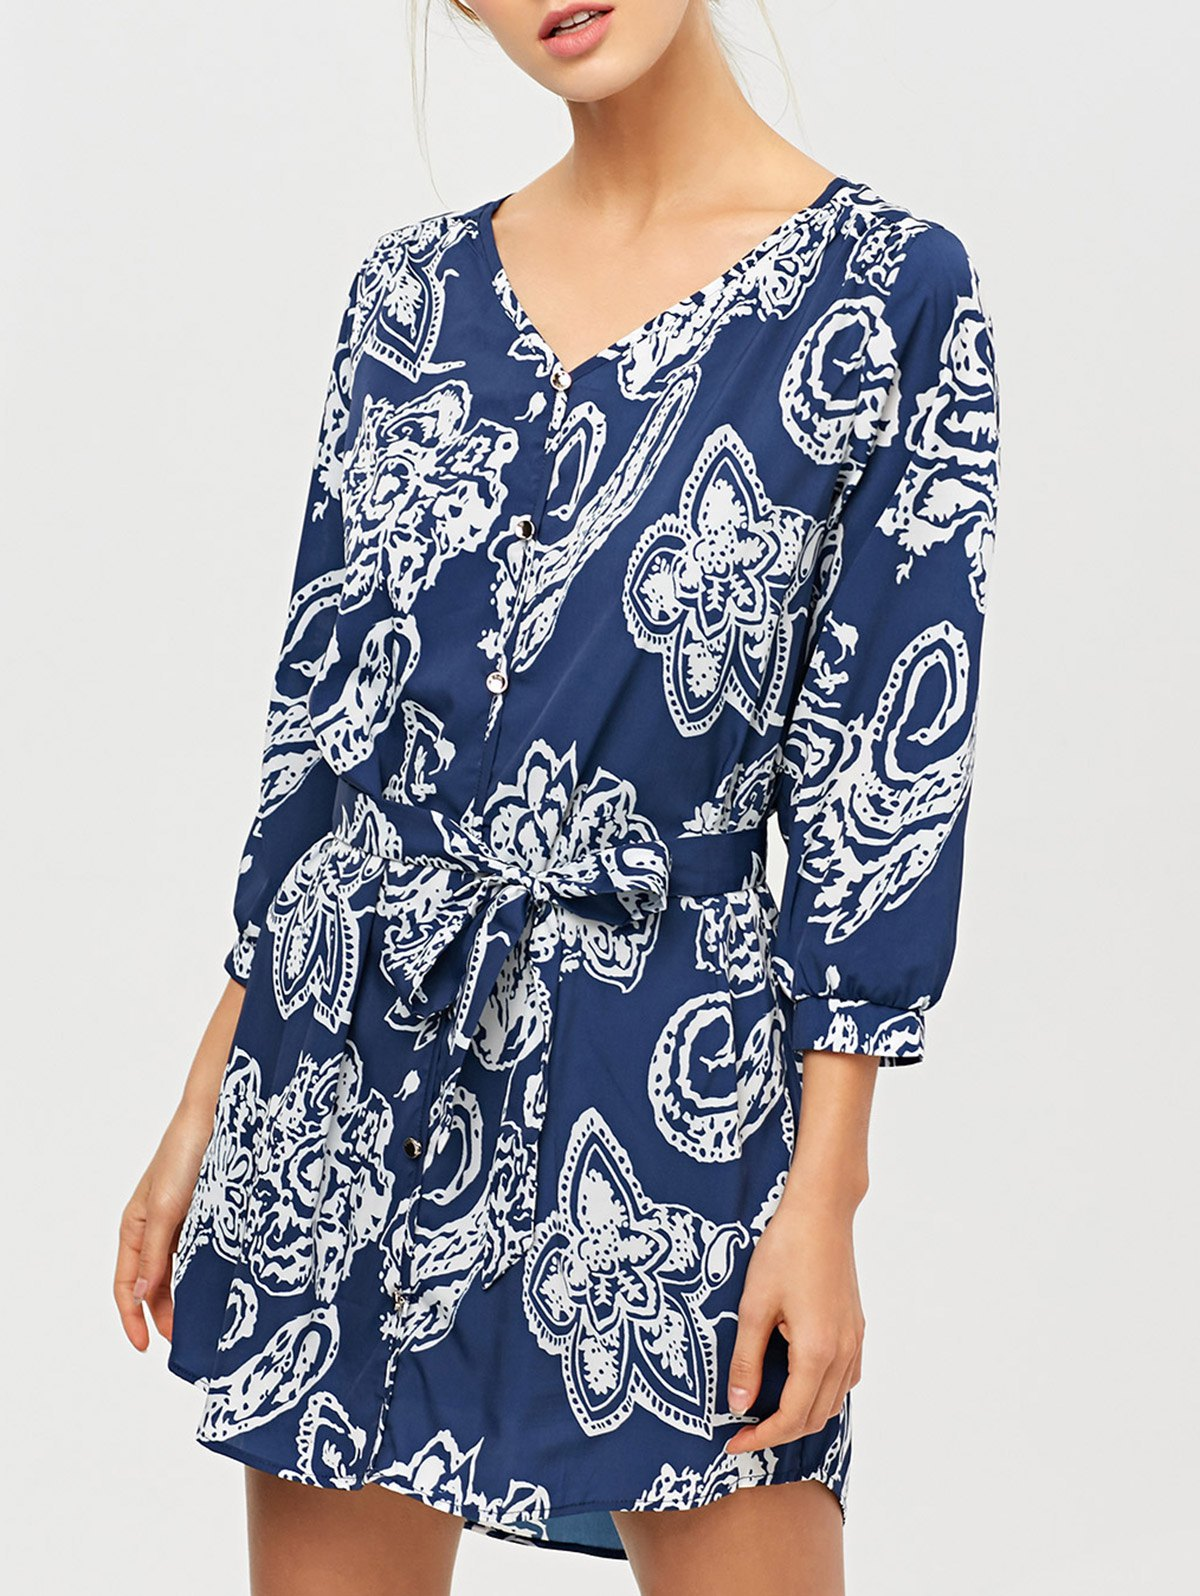 Vintage Printed Shirt DressClothes<br><br><br>Size: 2XL<br>Color: BLUE